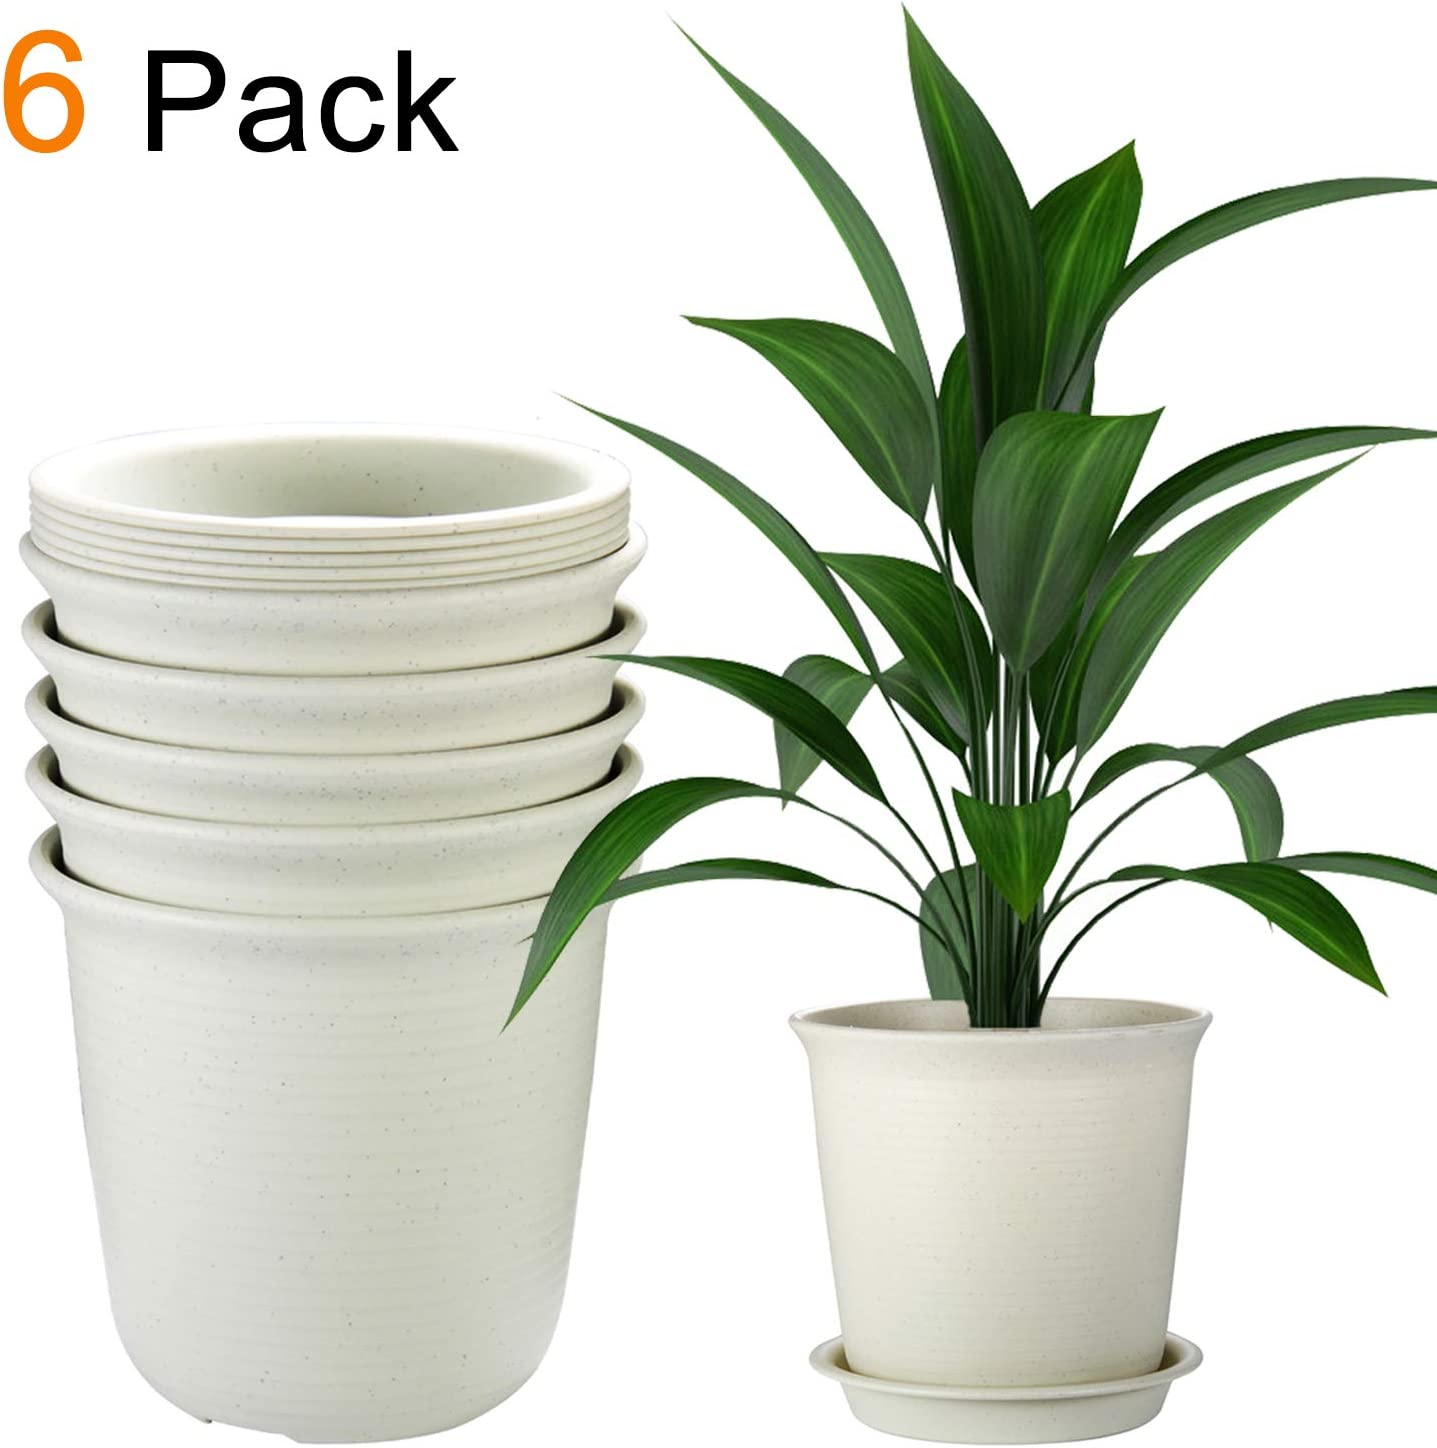 Flower Stand Moden Decor Planters for Bedroom Yard 8 Pack Indoor Plant Pots with Drainage and Tray EHWINE 7.2 Inch Plastic Flower Pots Beige Study